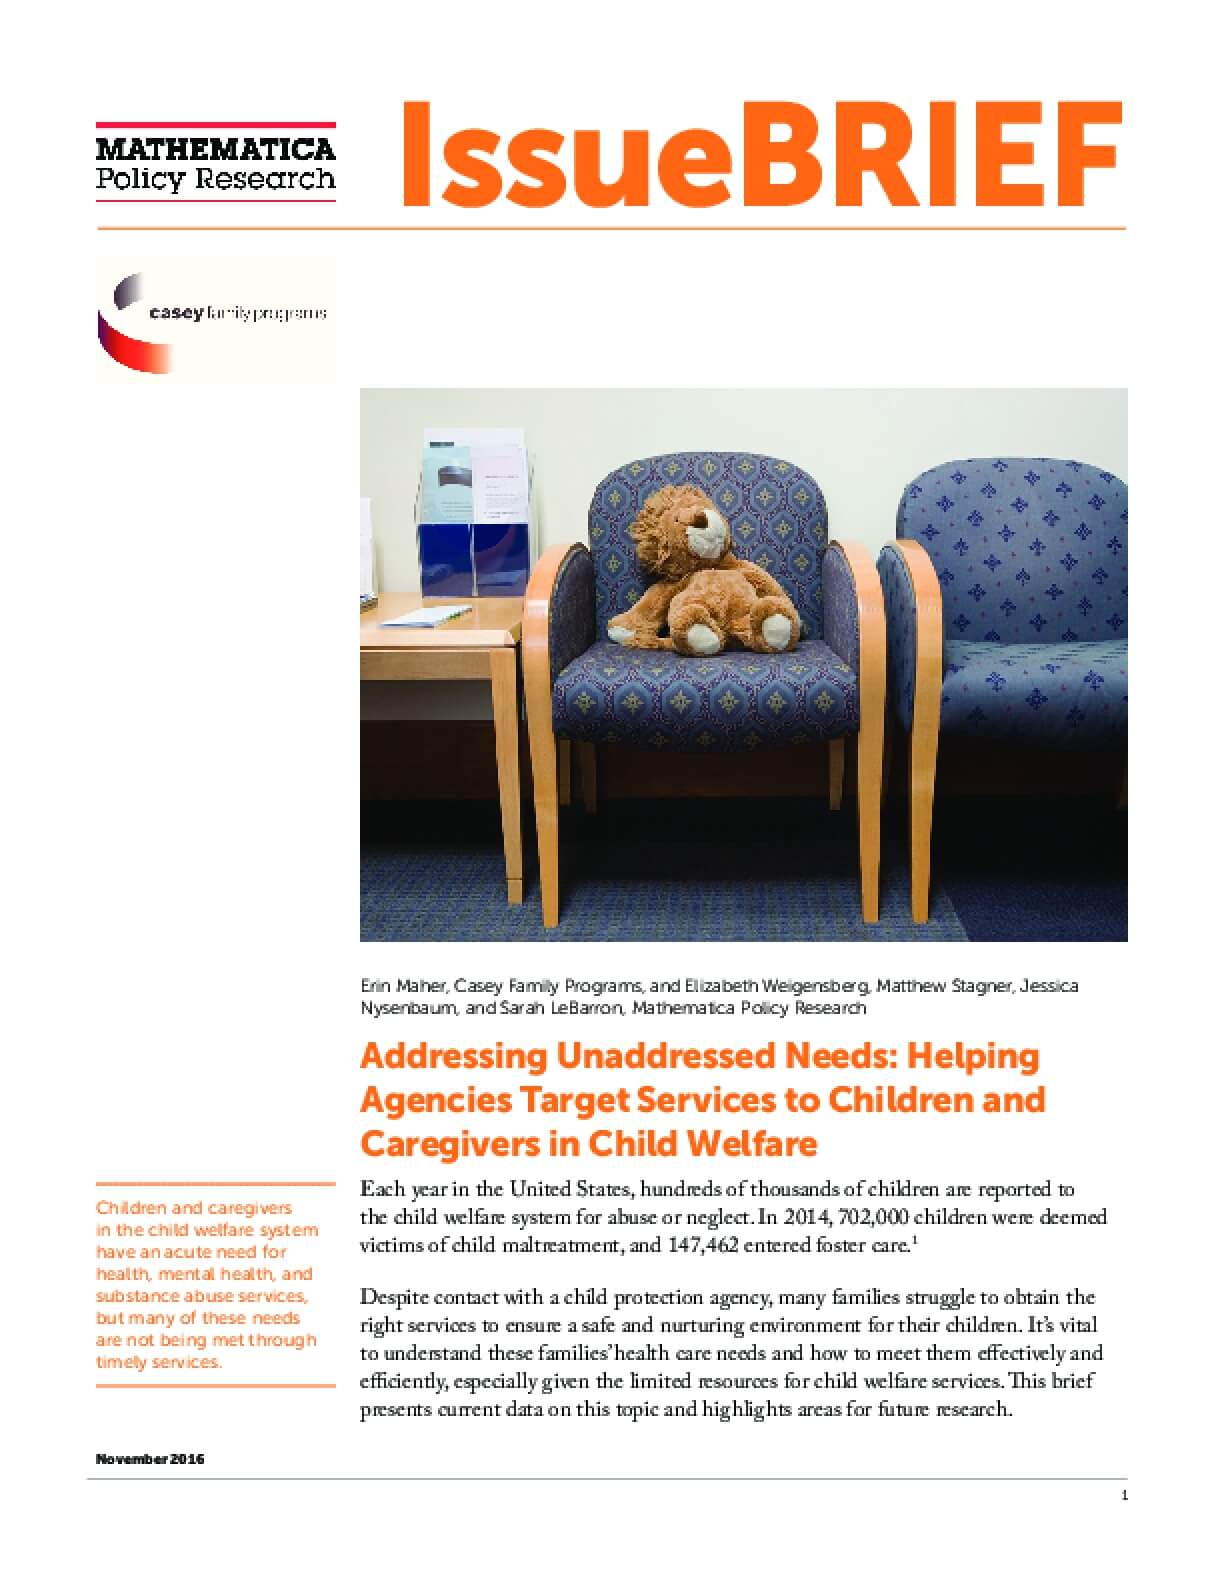 Addressing Unaddressed Needs: Helping Agencies Target Services to Children and Caregivers in Child Welfare